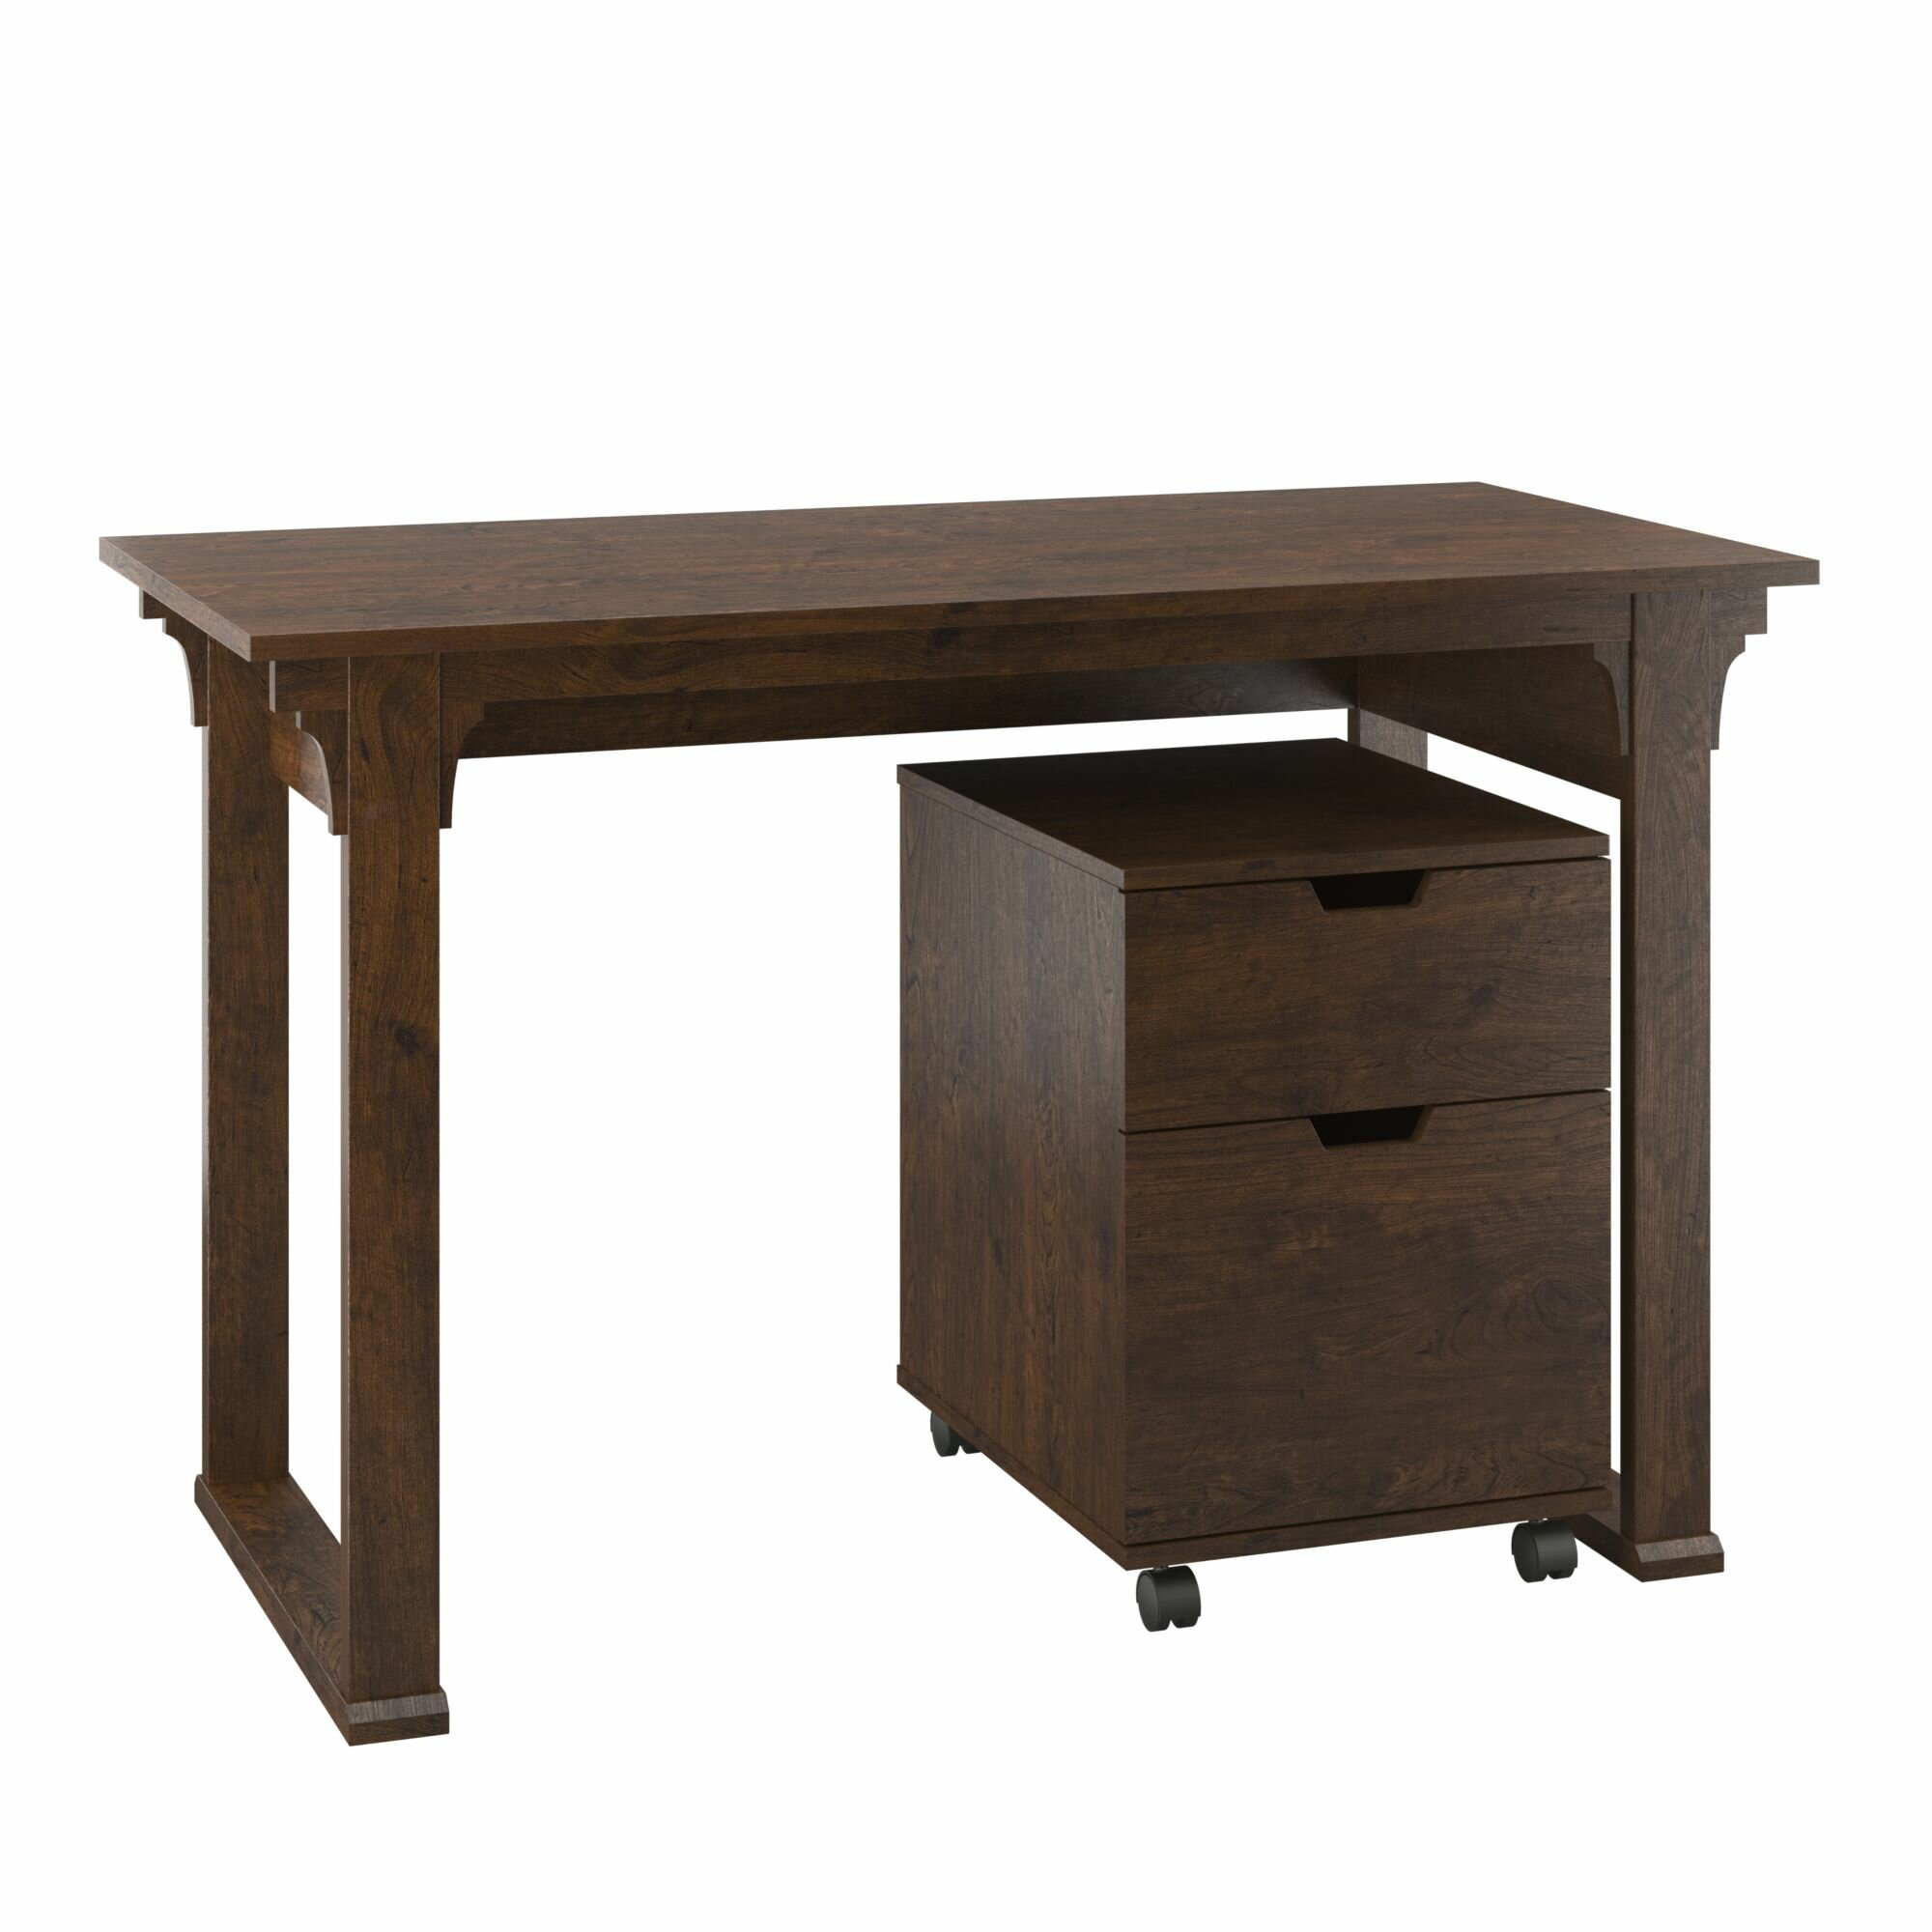 Loon peak aspen writing desk with 2 drawer mobile pedestal Peak office furniture